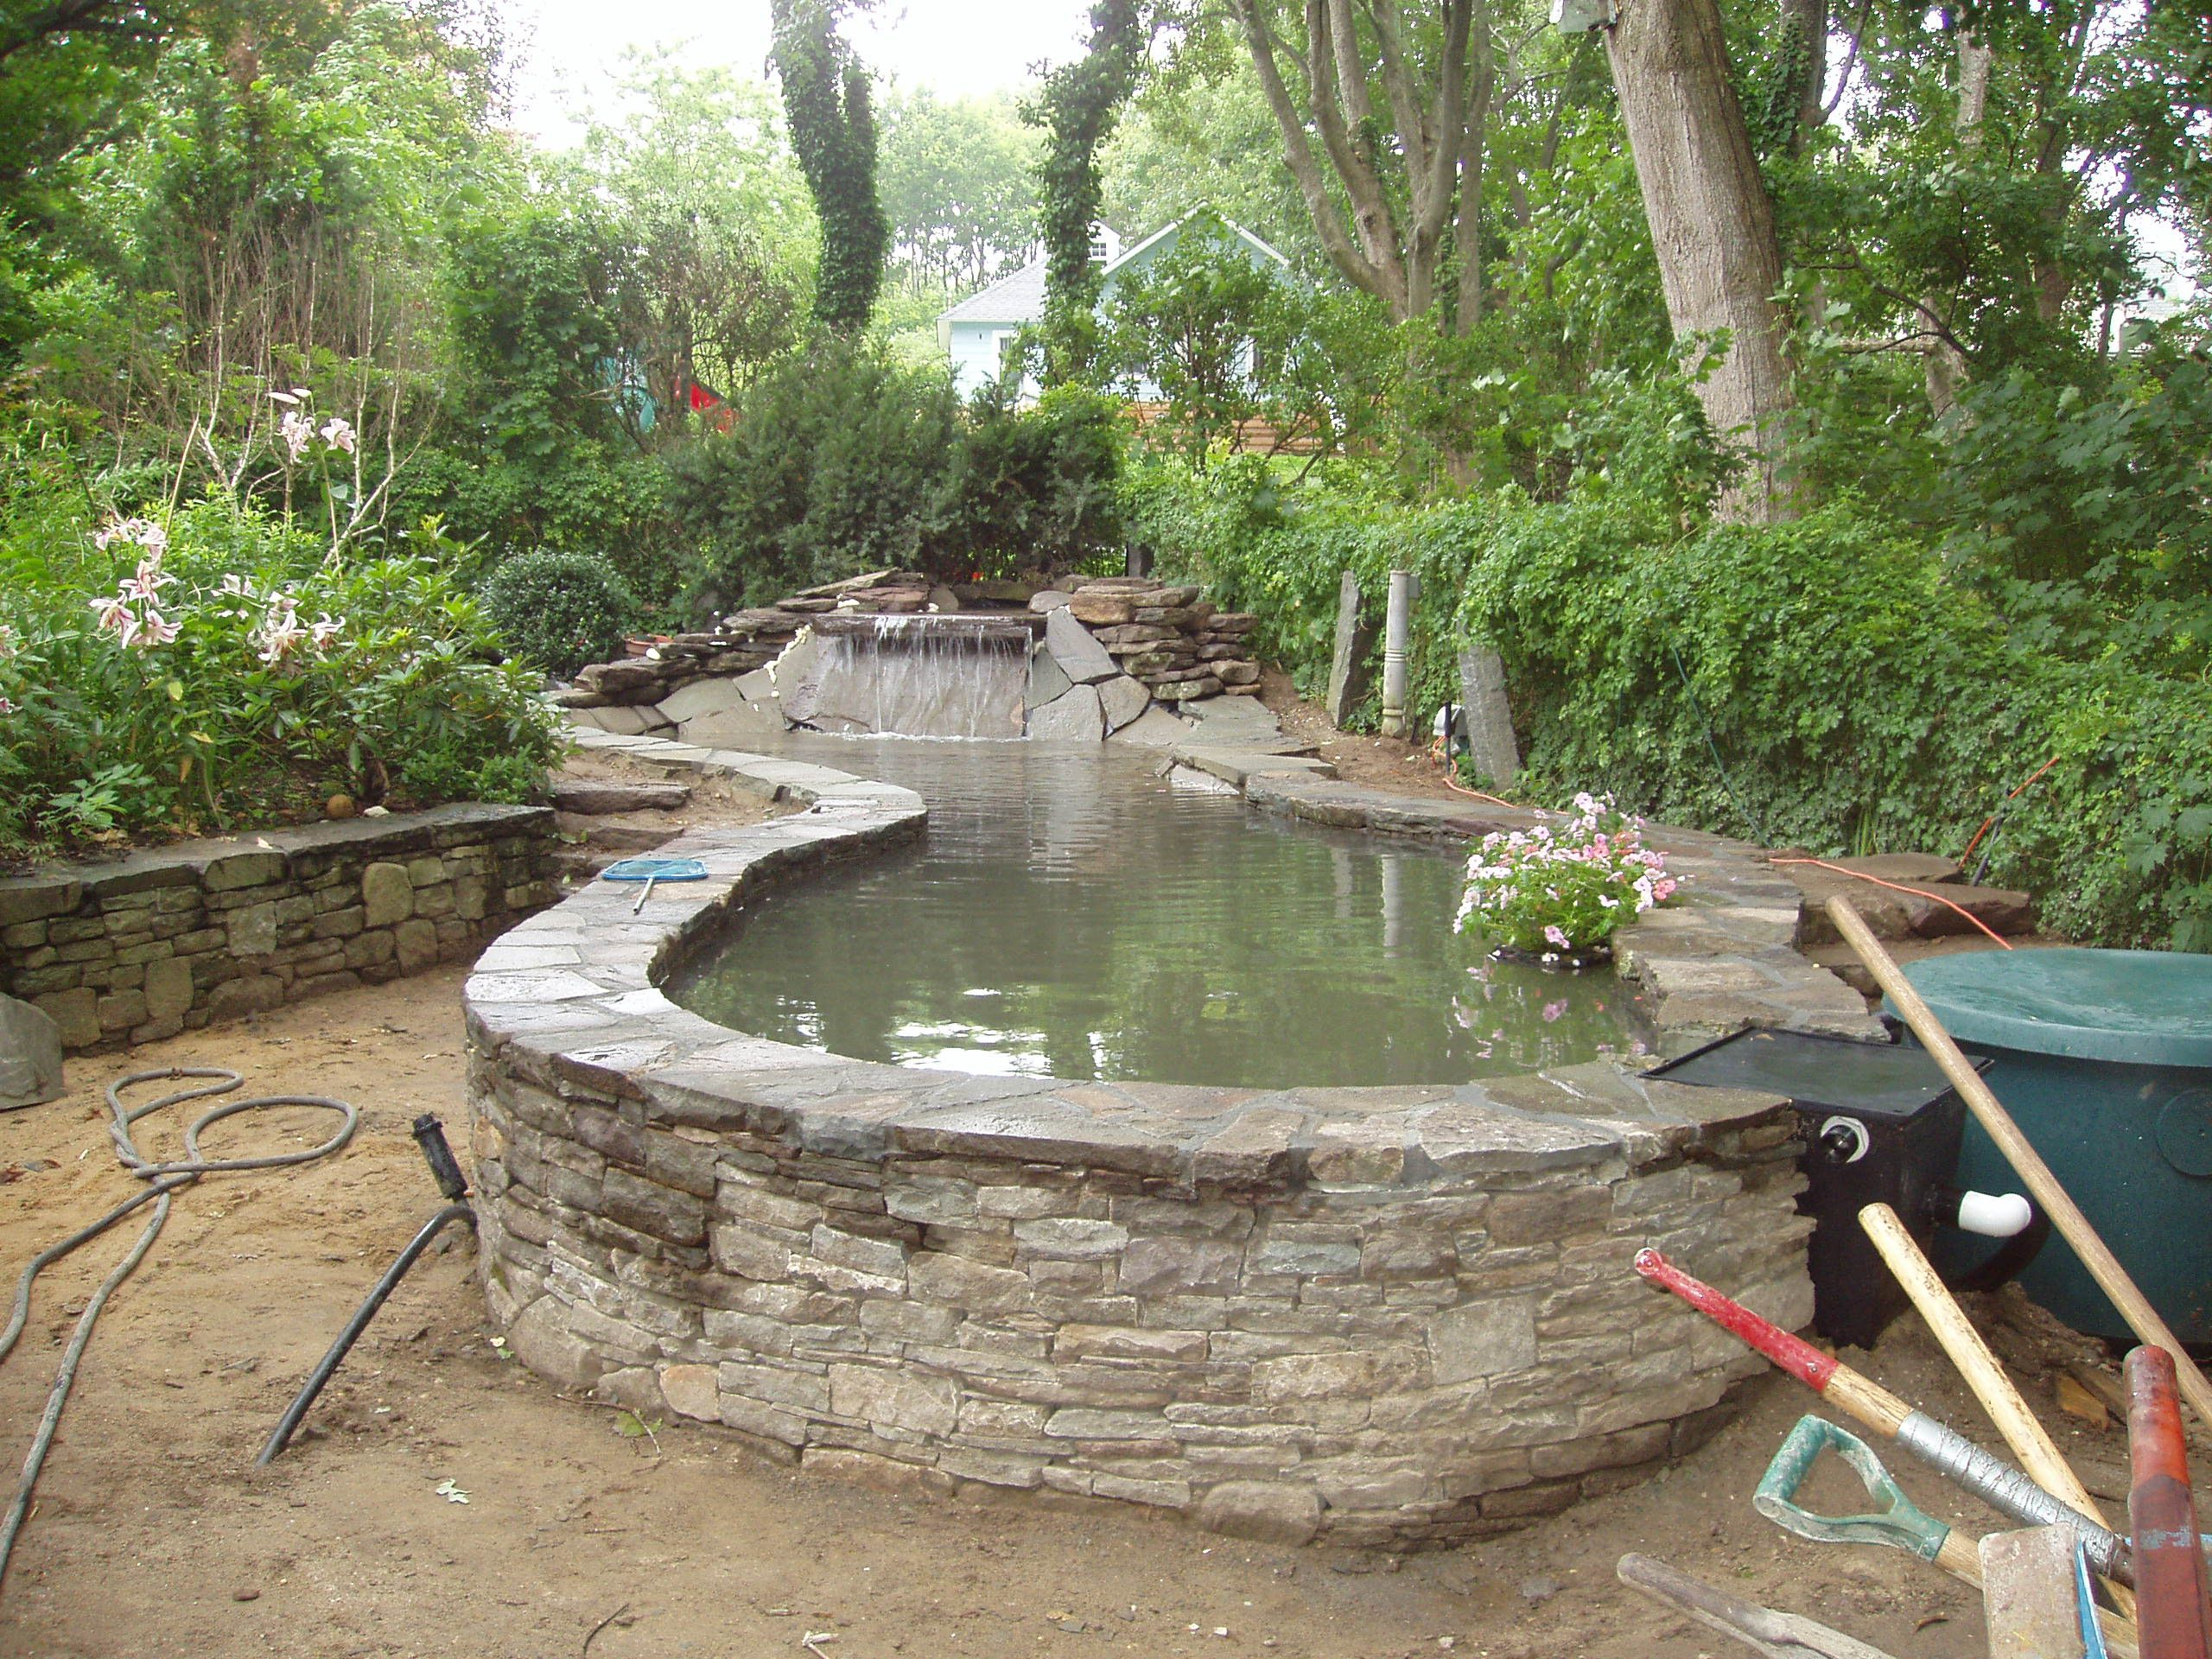 Fish pond pictures 95740 wallpapers things to make for Fish for small outdoor pond